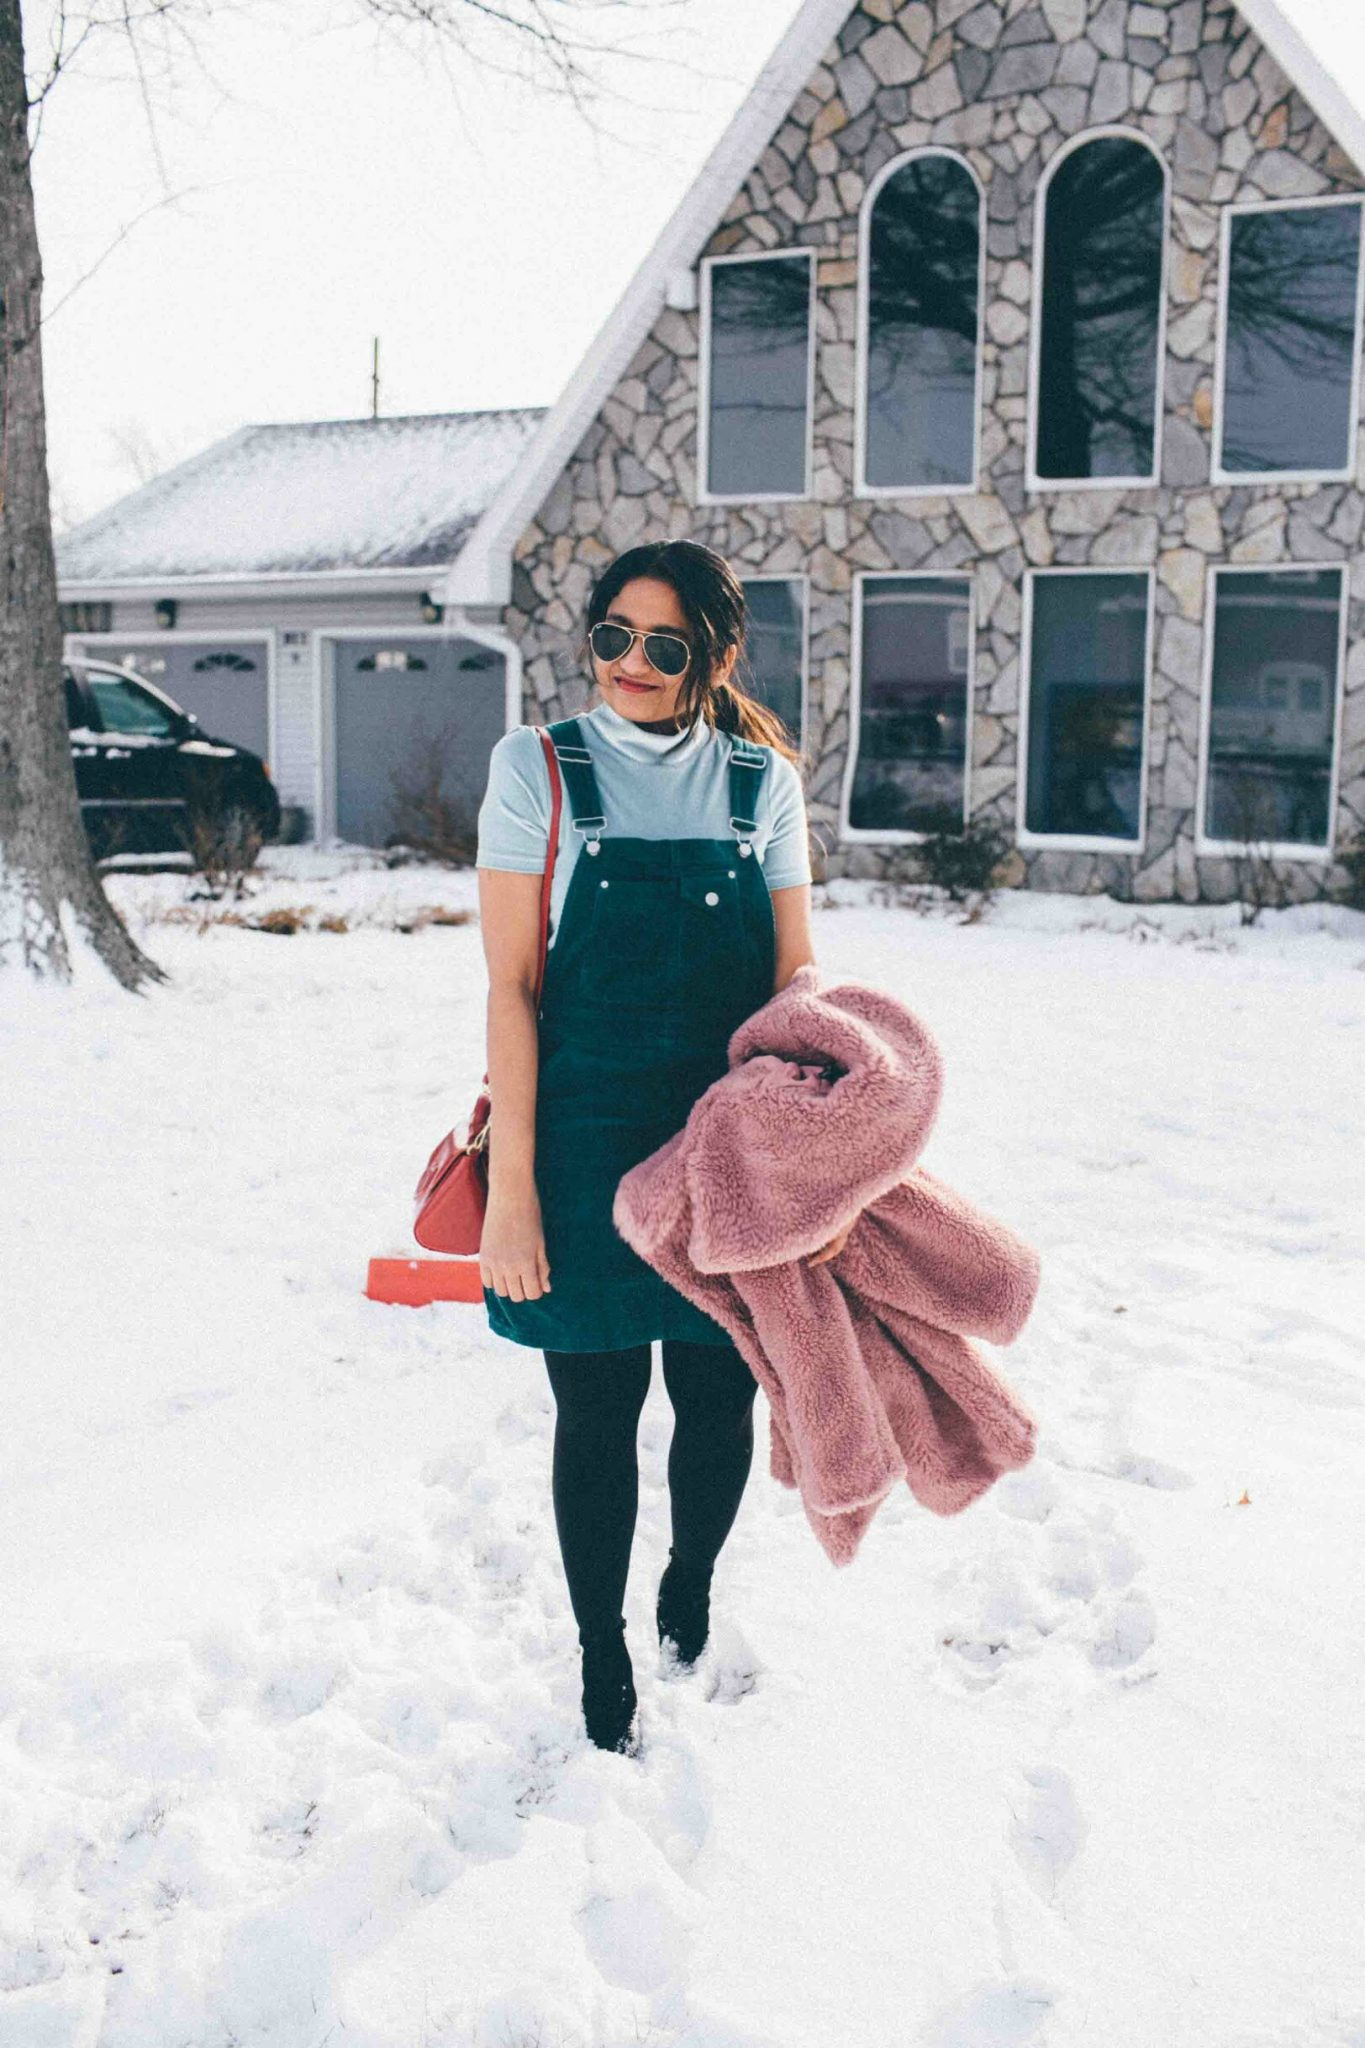 Lifestyle blog dreaming loud wearing asos suede overall dress in teal - Best of Presidents Day Sales featured by popular Ohio modest fashion blogger, Dreaming Loud